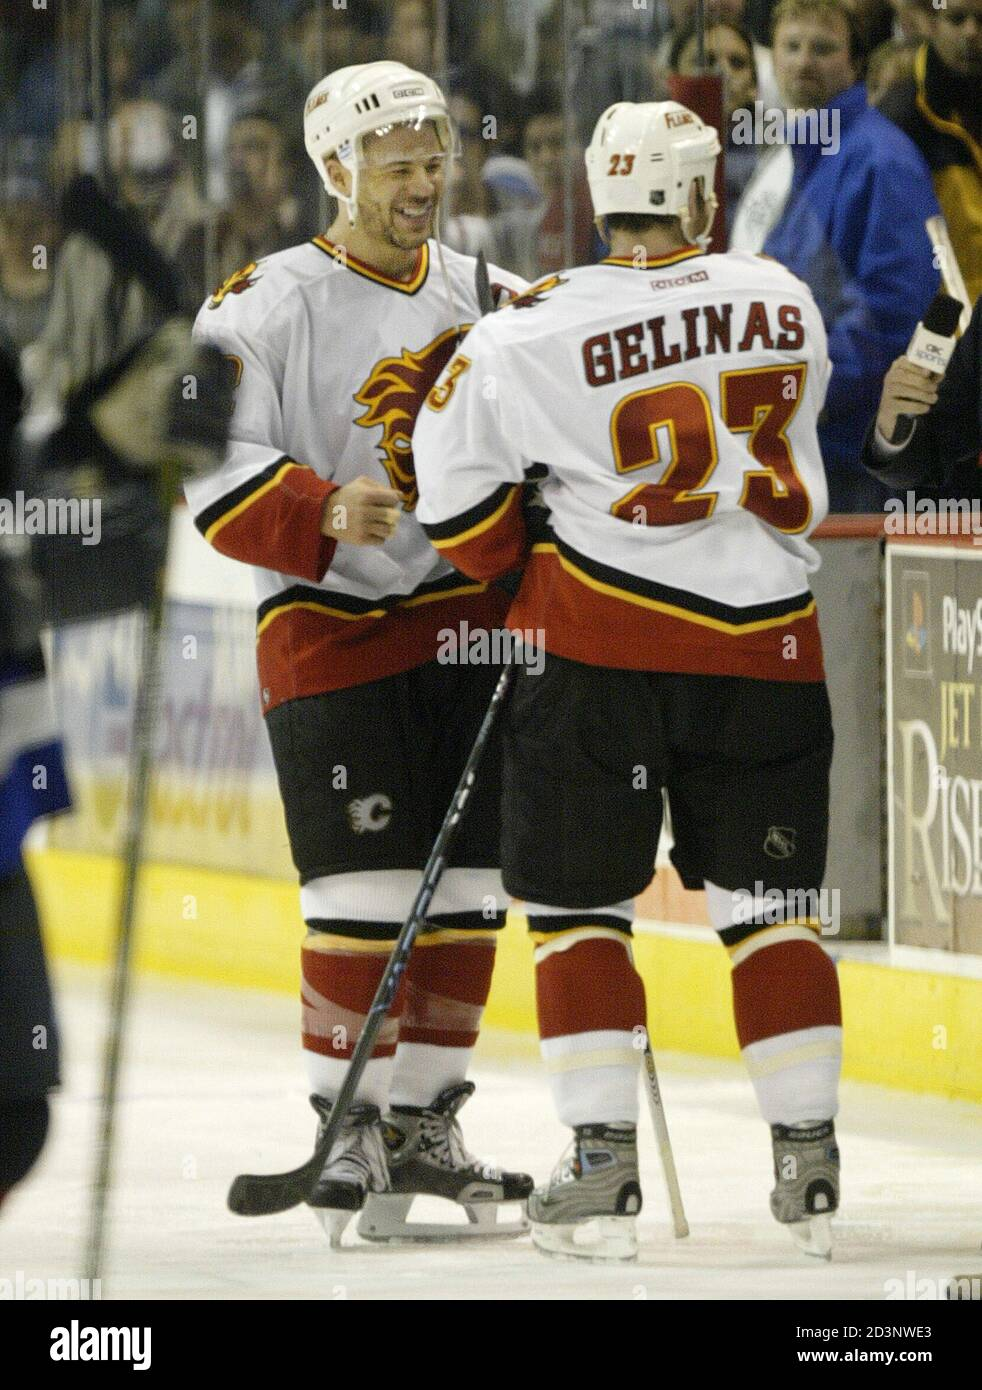 Calgary Flames Players Jarome Iginla L And Martin Gelinas Celebrate Following Their Victory Over The Vancouver Canucks In Vancouver British Columbia April 19 2004 The Flames Advance To The Next Round Of